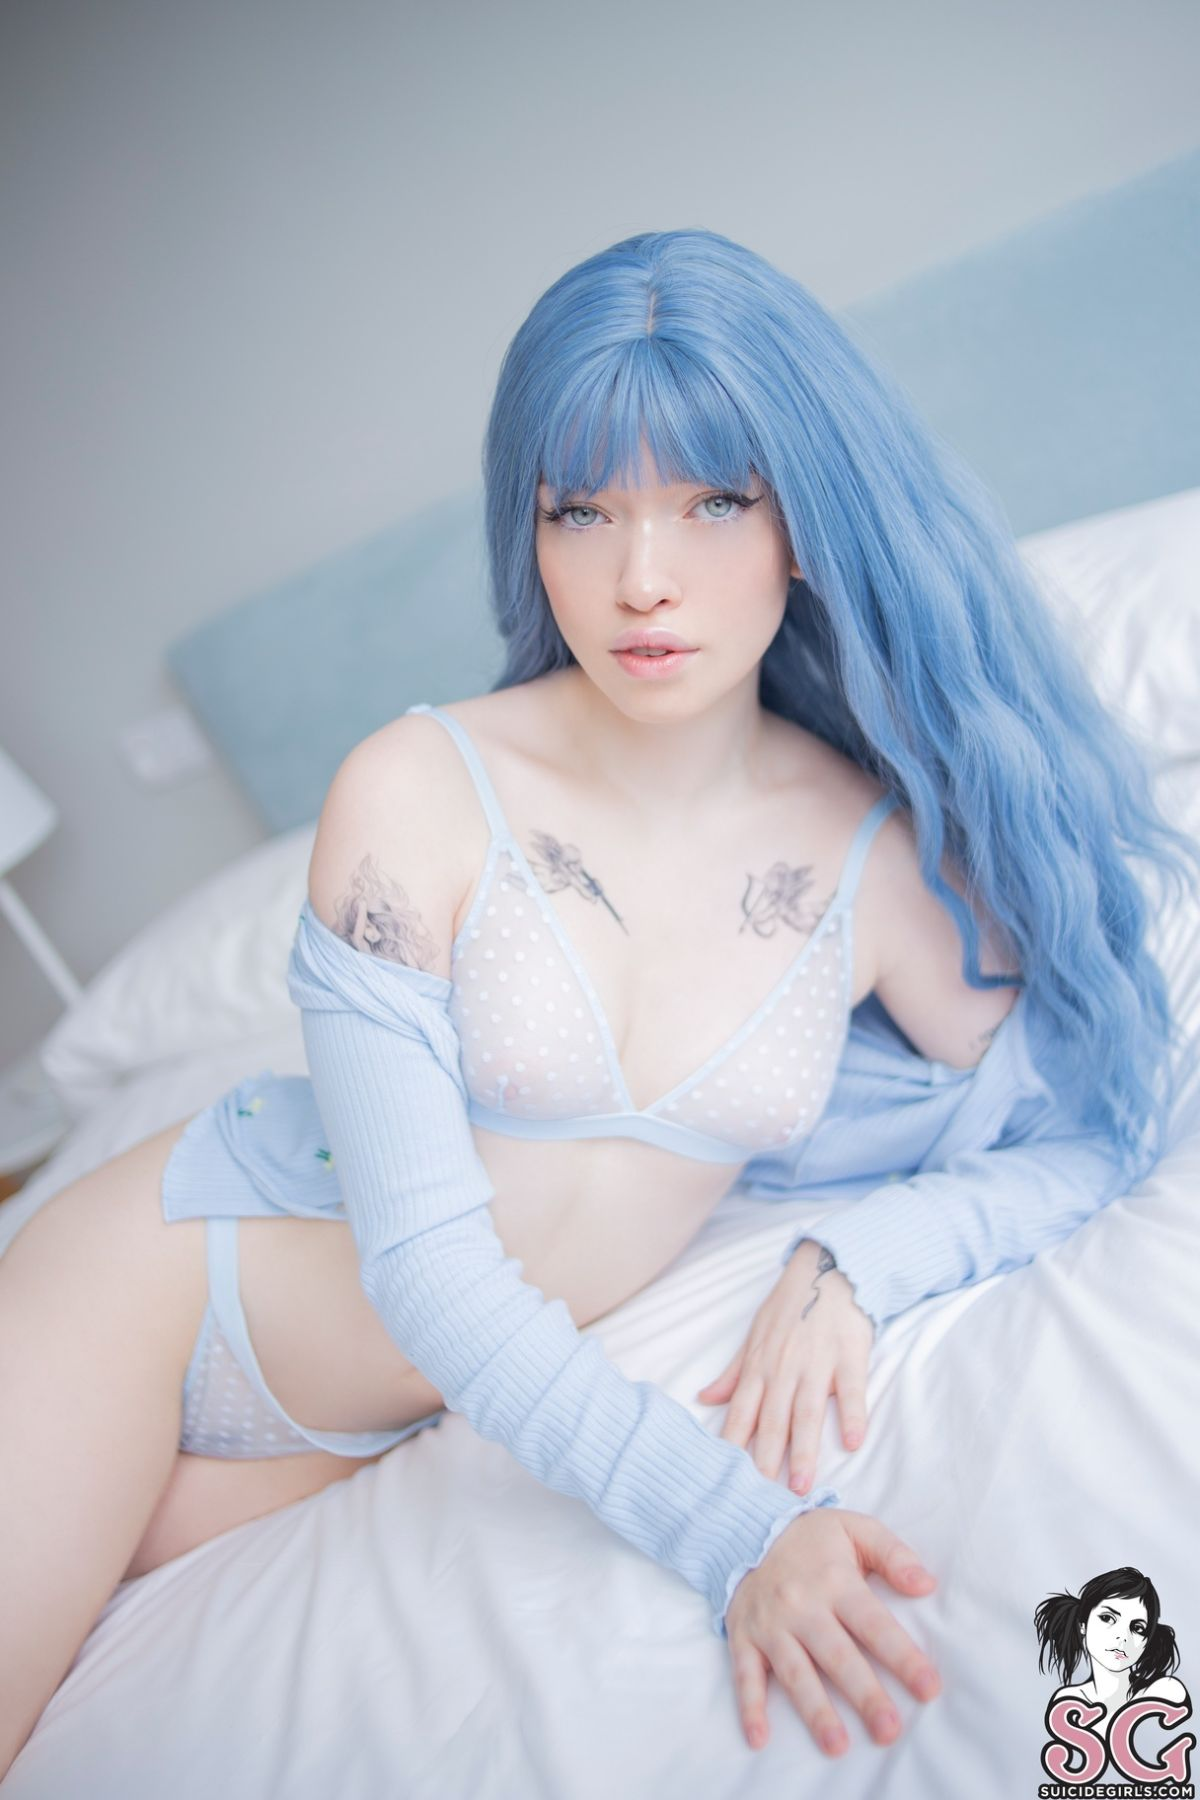 Free nudes of Mitsuki onlyfans leaked